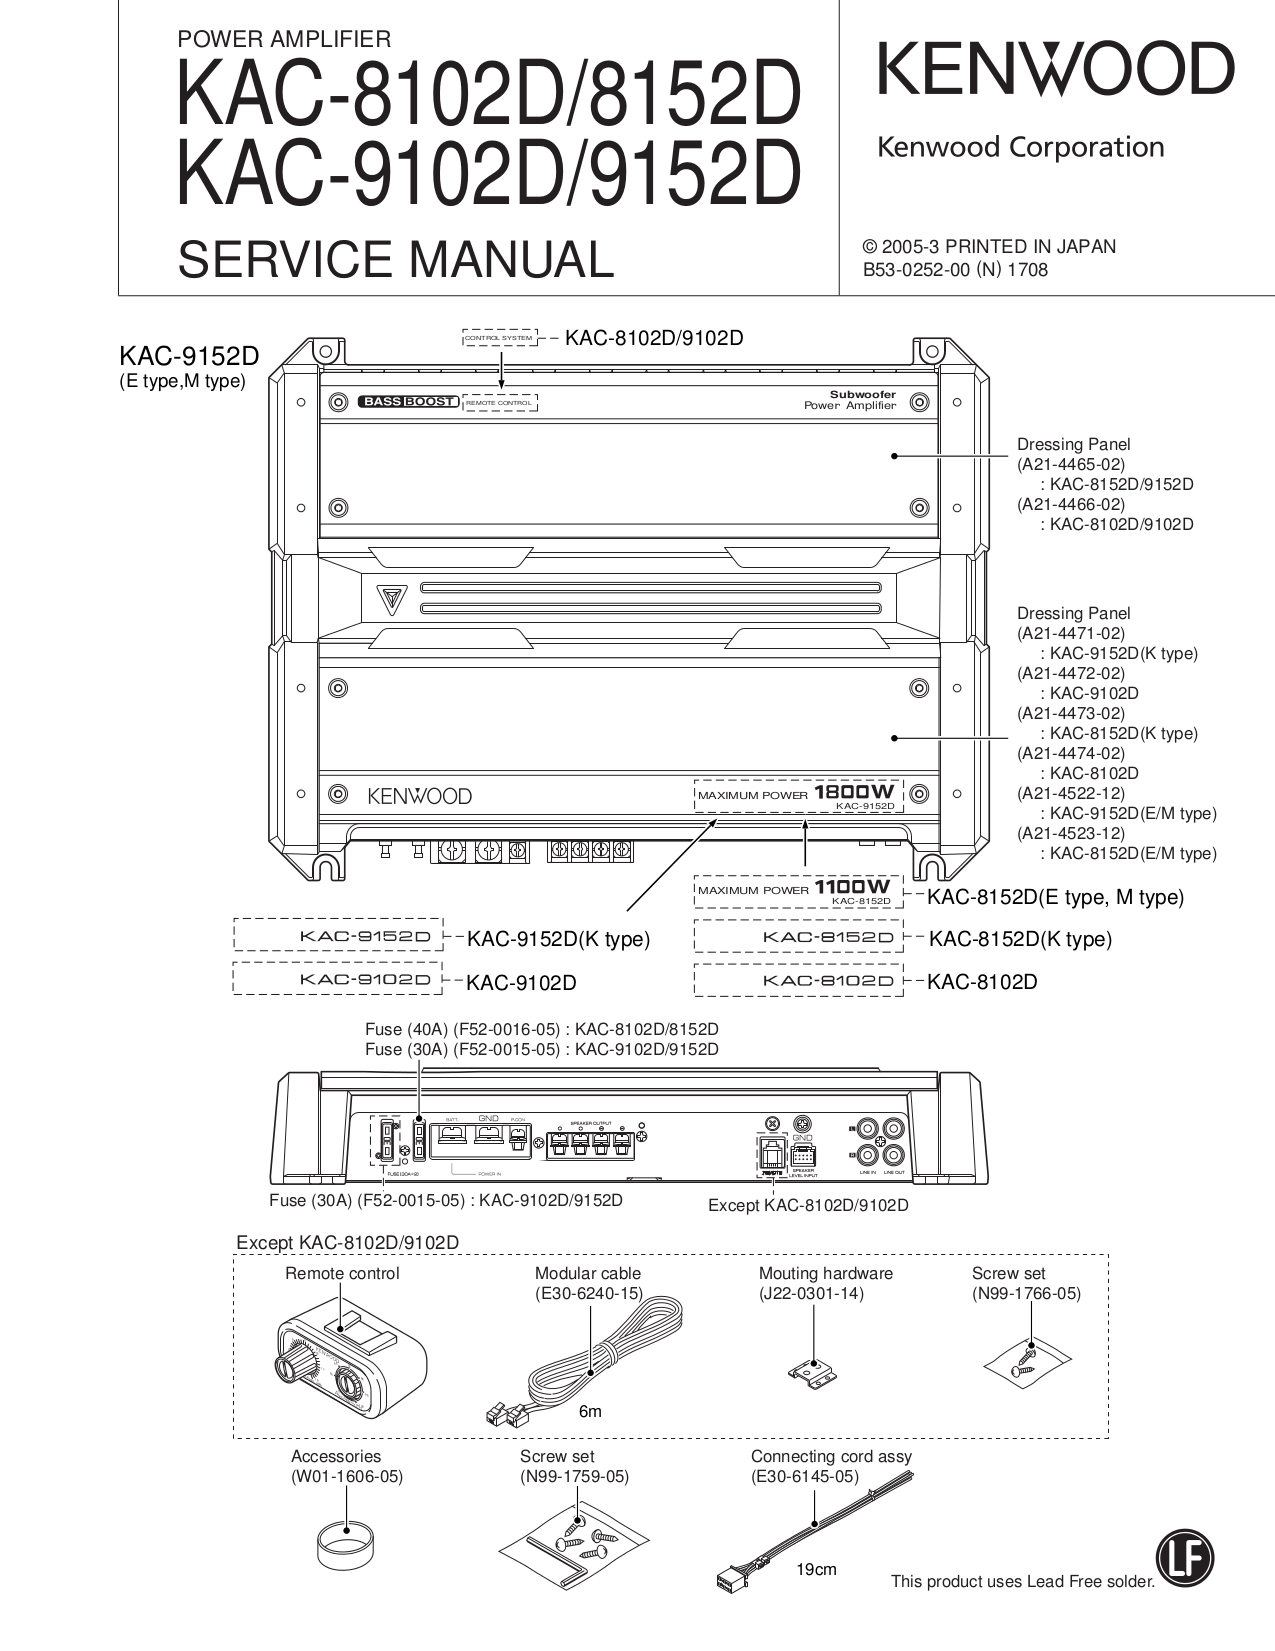 Kenwood KAC 8102D_8152D_9102D_9152D.pdf 0 pdf manual for kenwood car amplifier kac 8102d kenwood kac 9104d wiring diagram at readyjetset.co